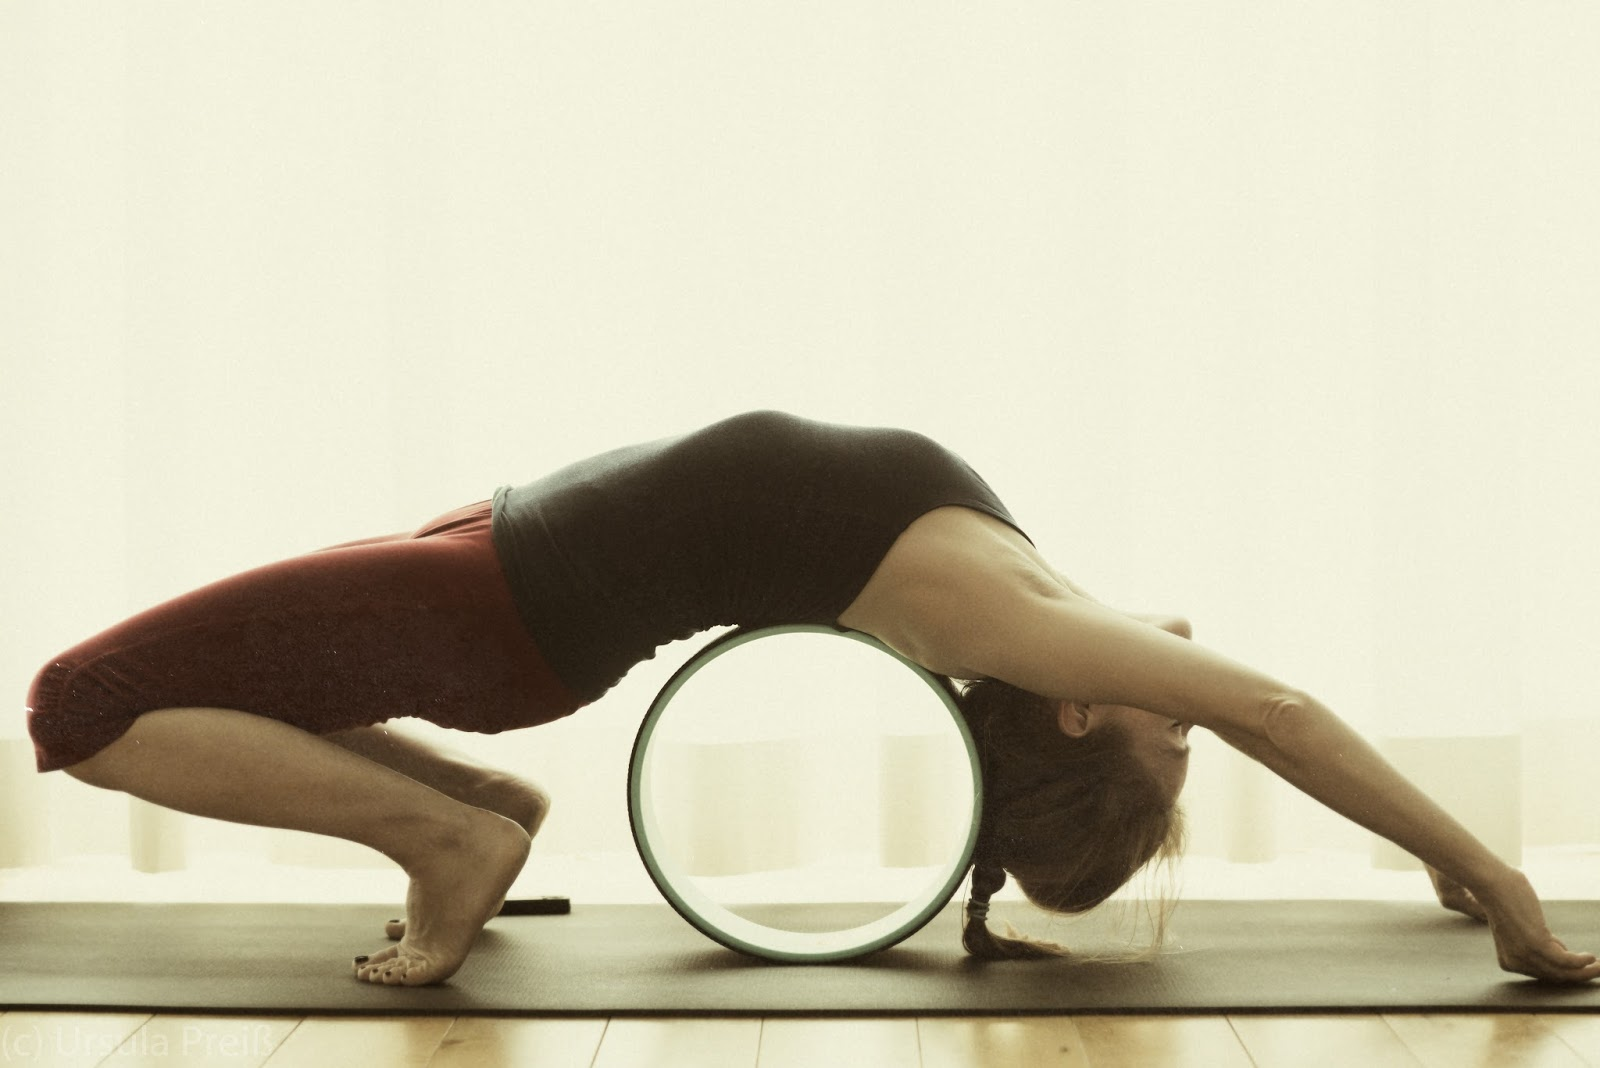 My Yoga Blog: Ashtanga yoga is not a strength training